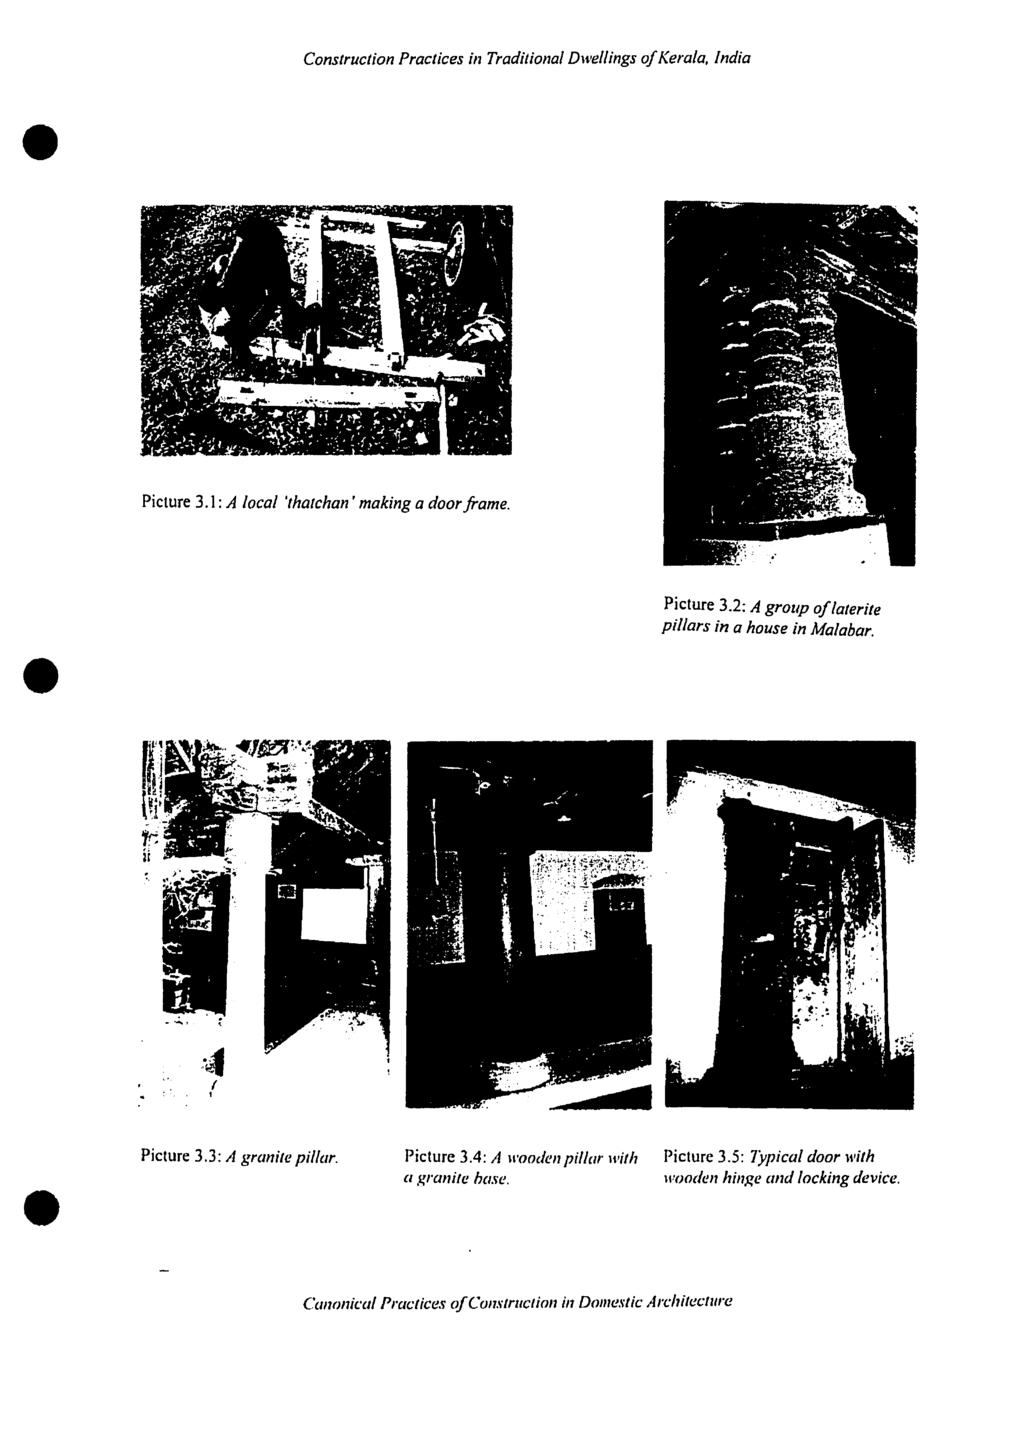 Construction Practices in Traditional Dwellings 0/Kerala. India Picture 3.1: A local 'thatchan' making a door frame. Picture 3.2: A group oflaterite pillars in a house in Malabar...4 ~ 11 Picture 3.